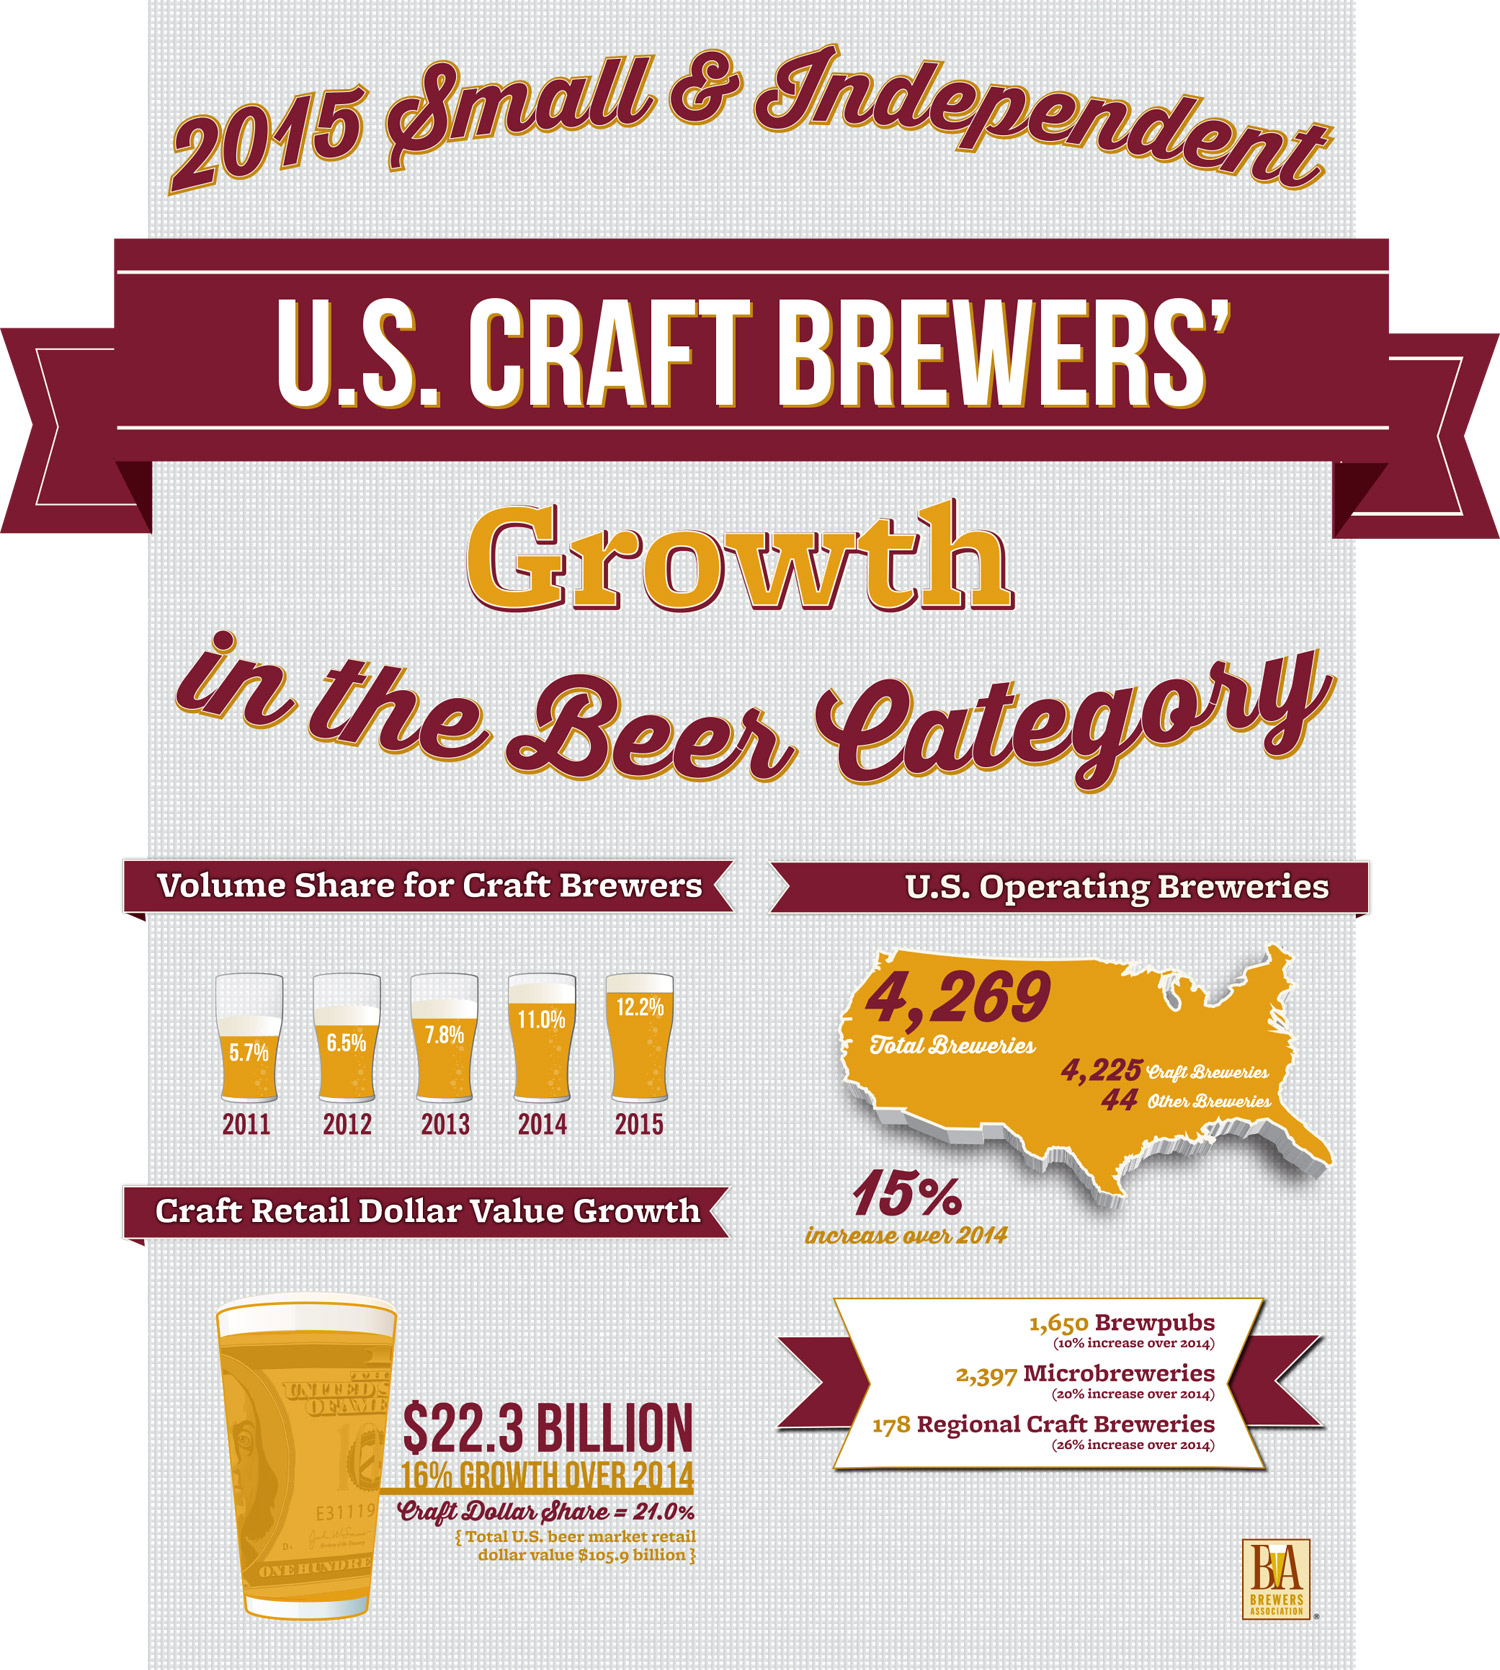 Craft Beer Industry Statistics